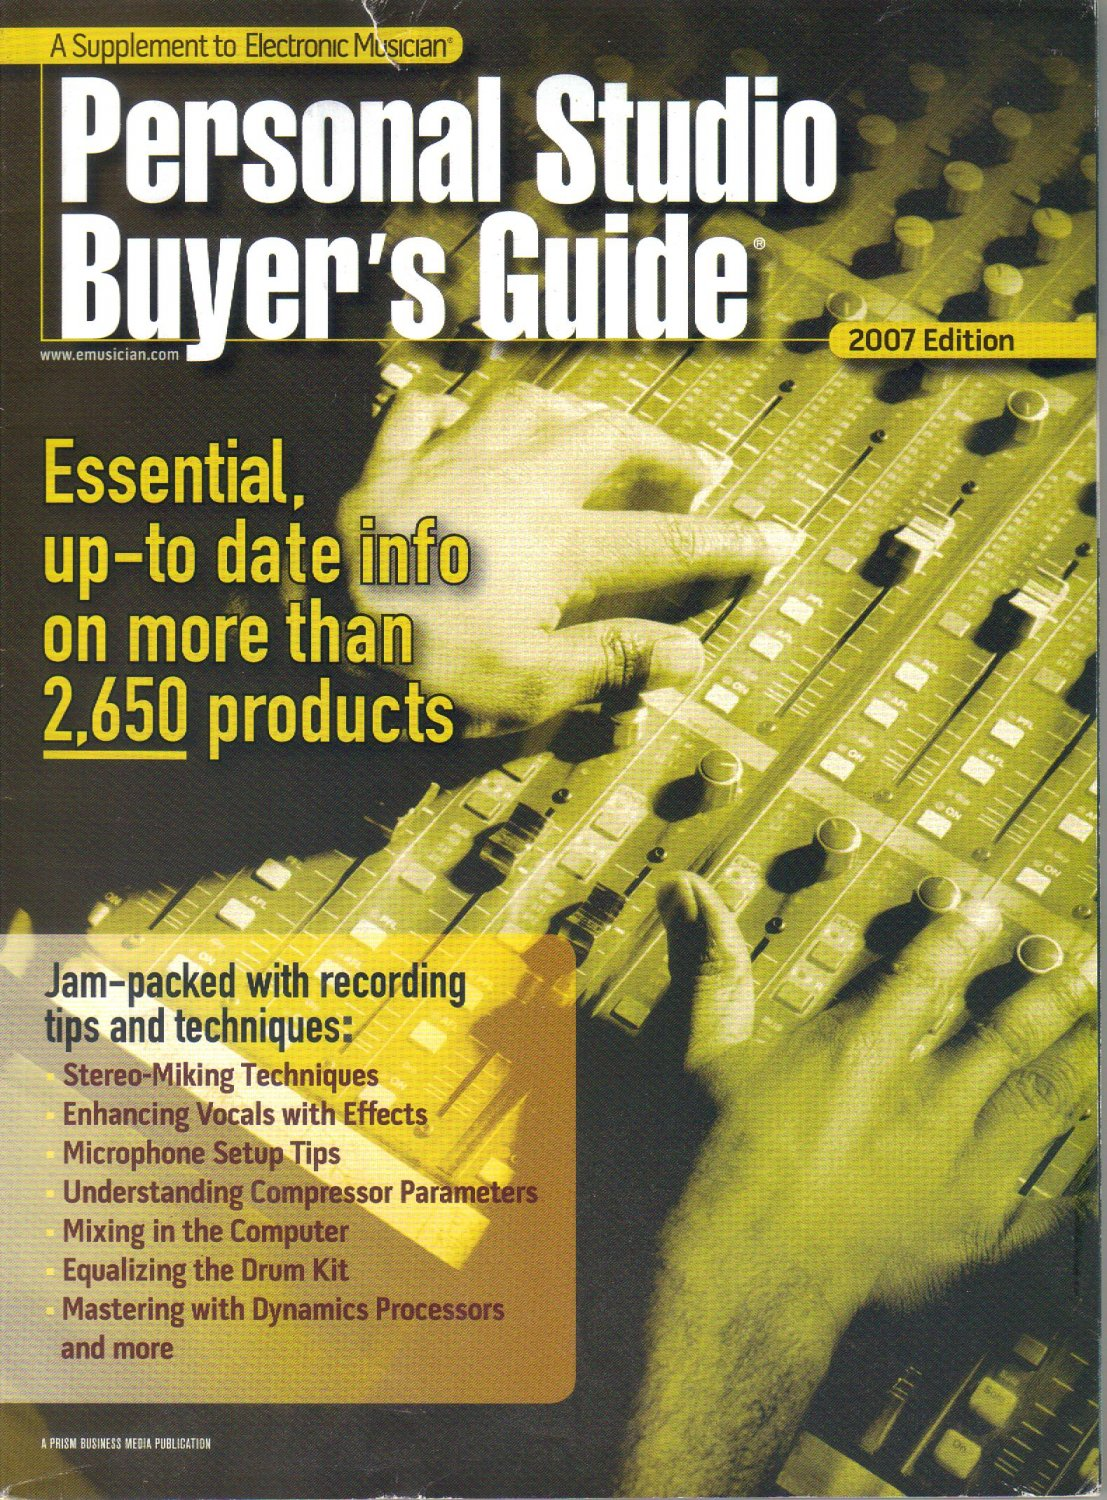 Supplement to Electronic Musician Magazine, 2007 Personal Studio Buyer's Guide-Russell Kunkel